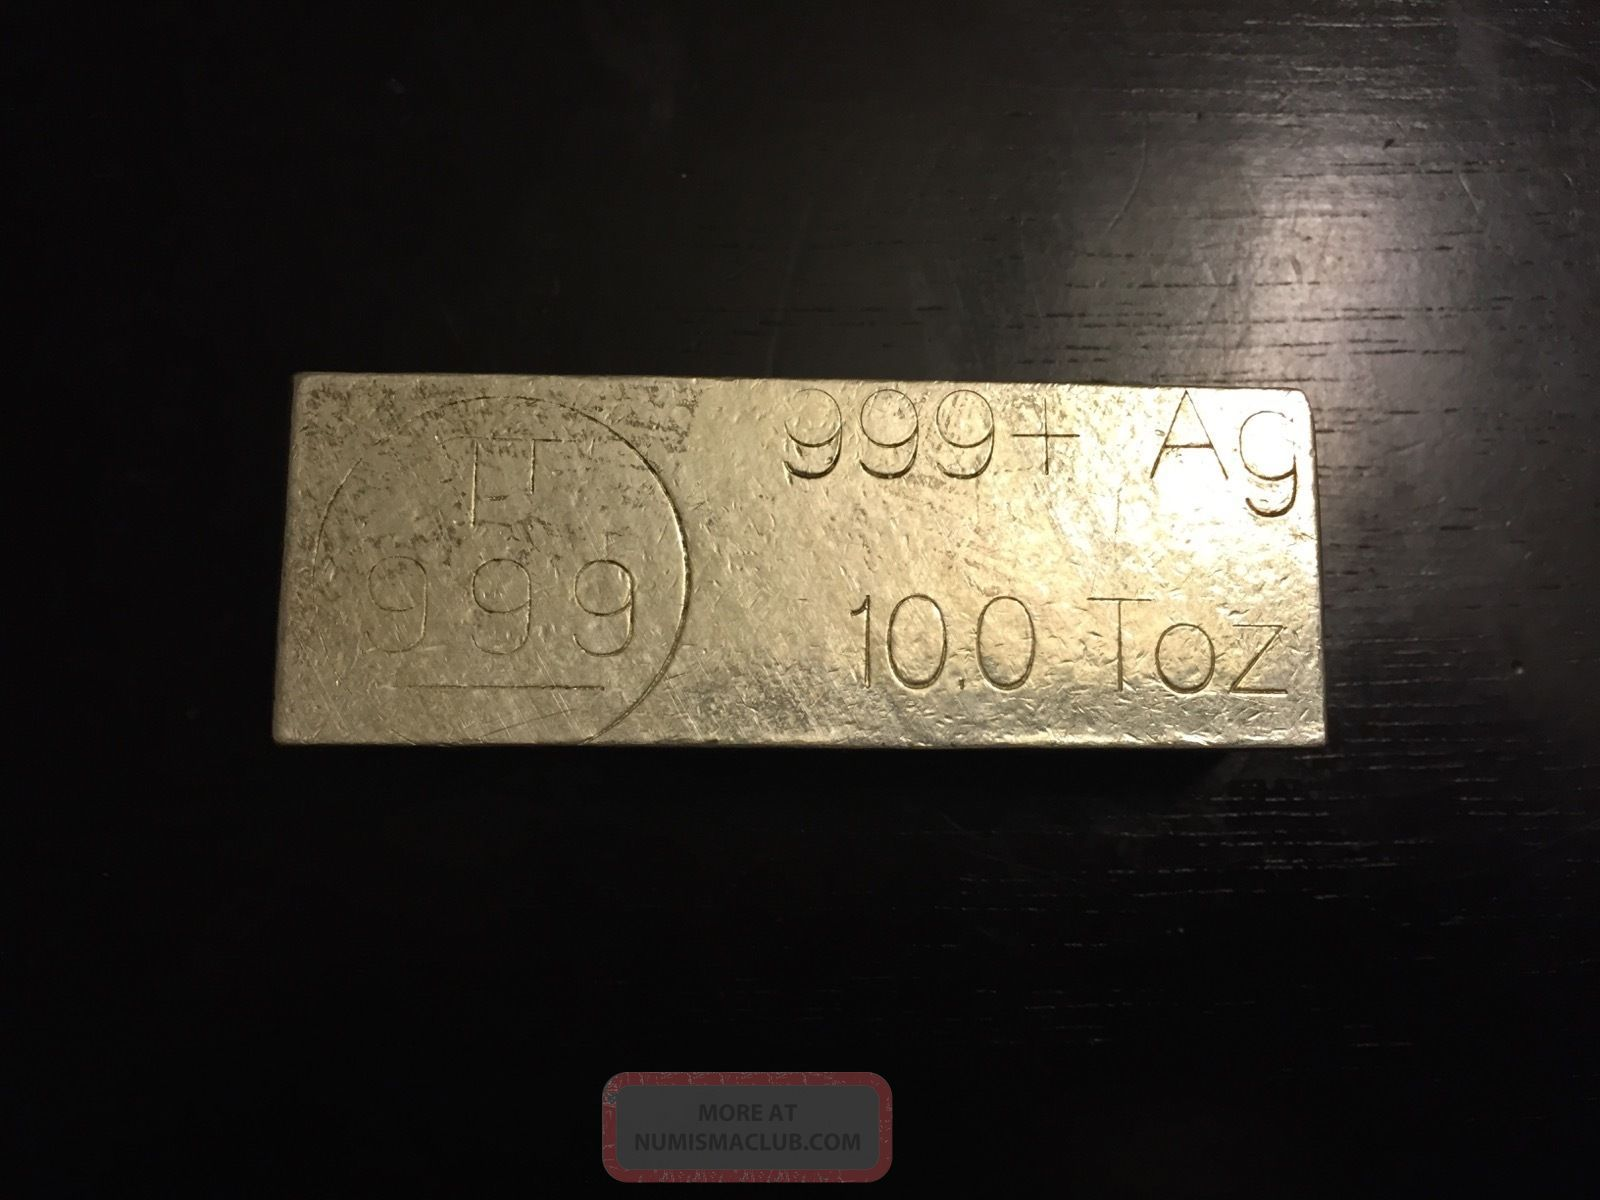 10 Oz 999 Silver Bar Made By Pyromet Refinery Rare Kit